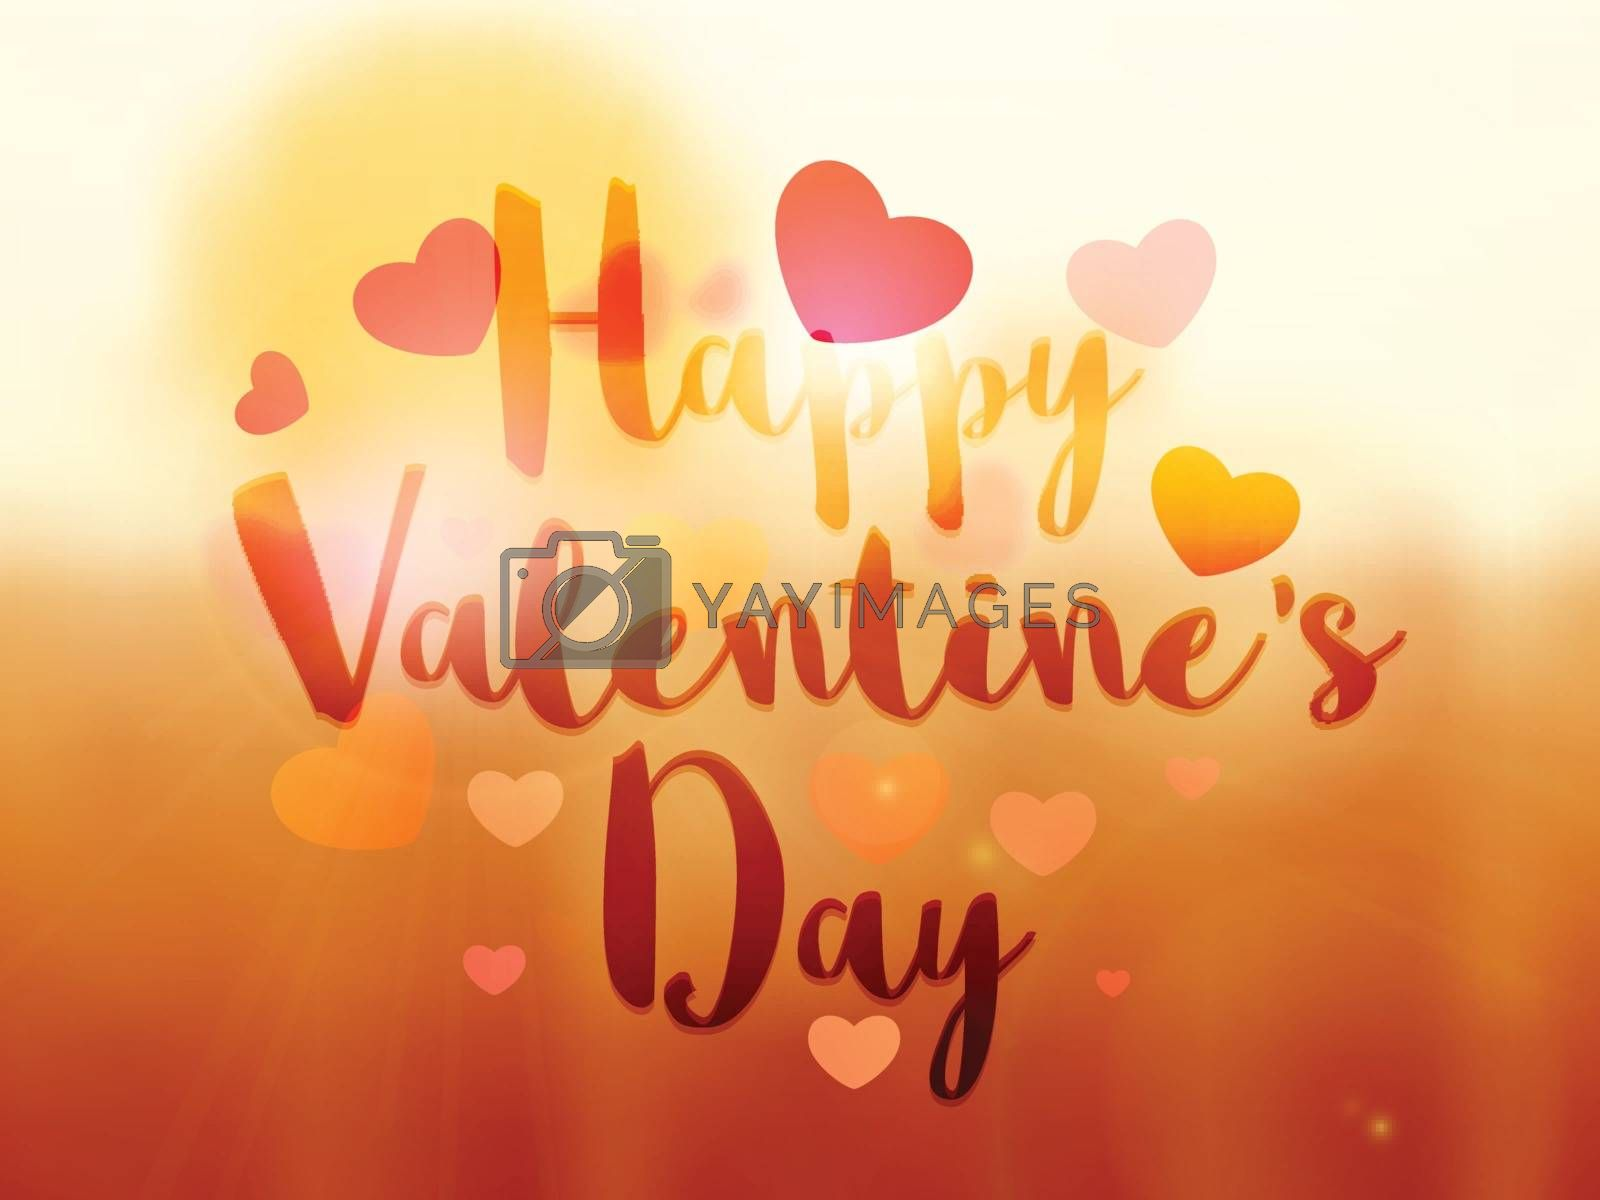 Beautiful glossy Happy Valentine's Day Typographical Background with Hearts decorations.